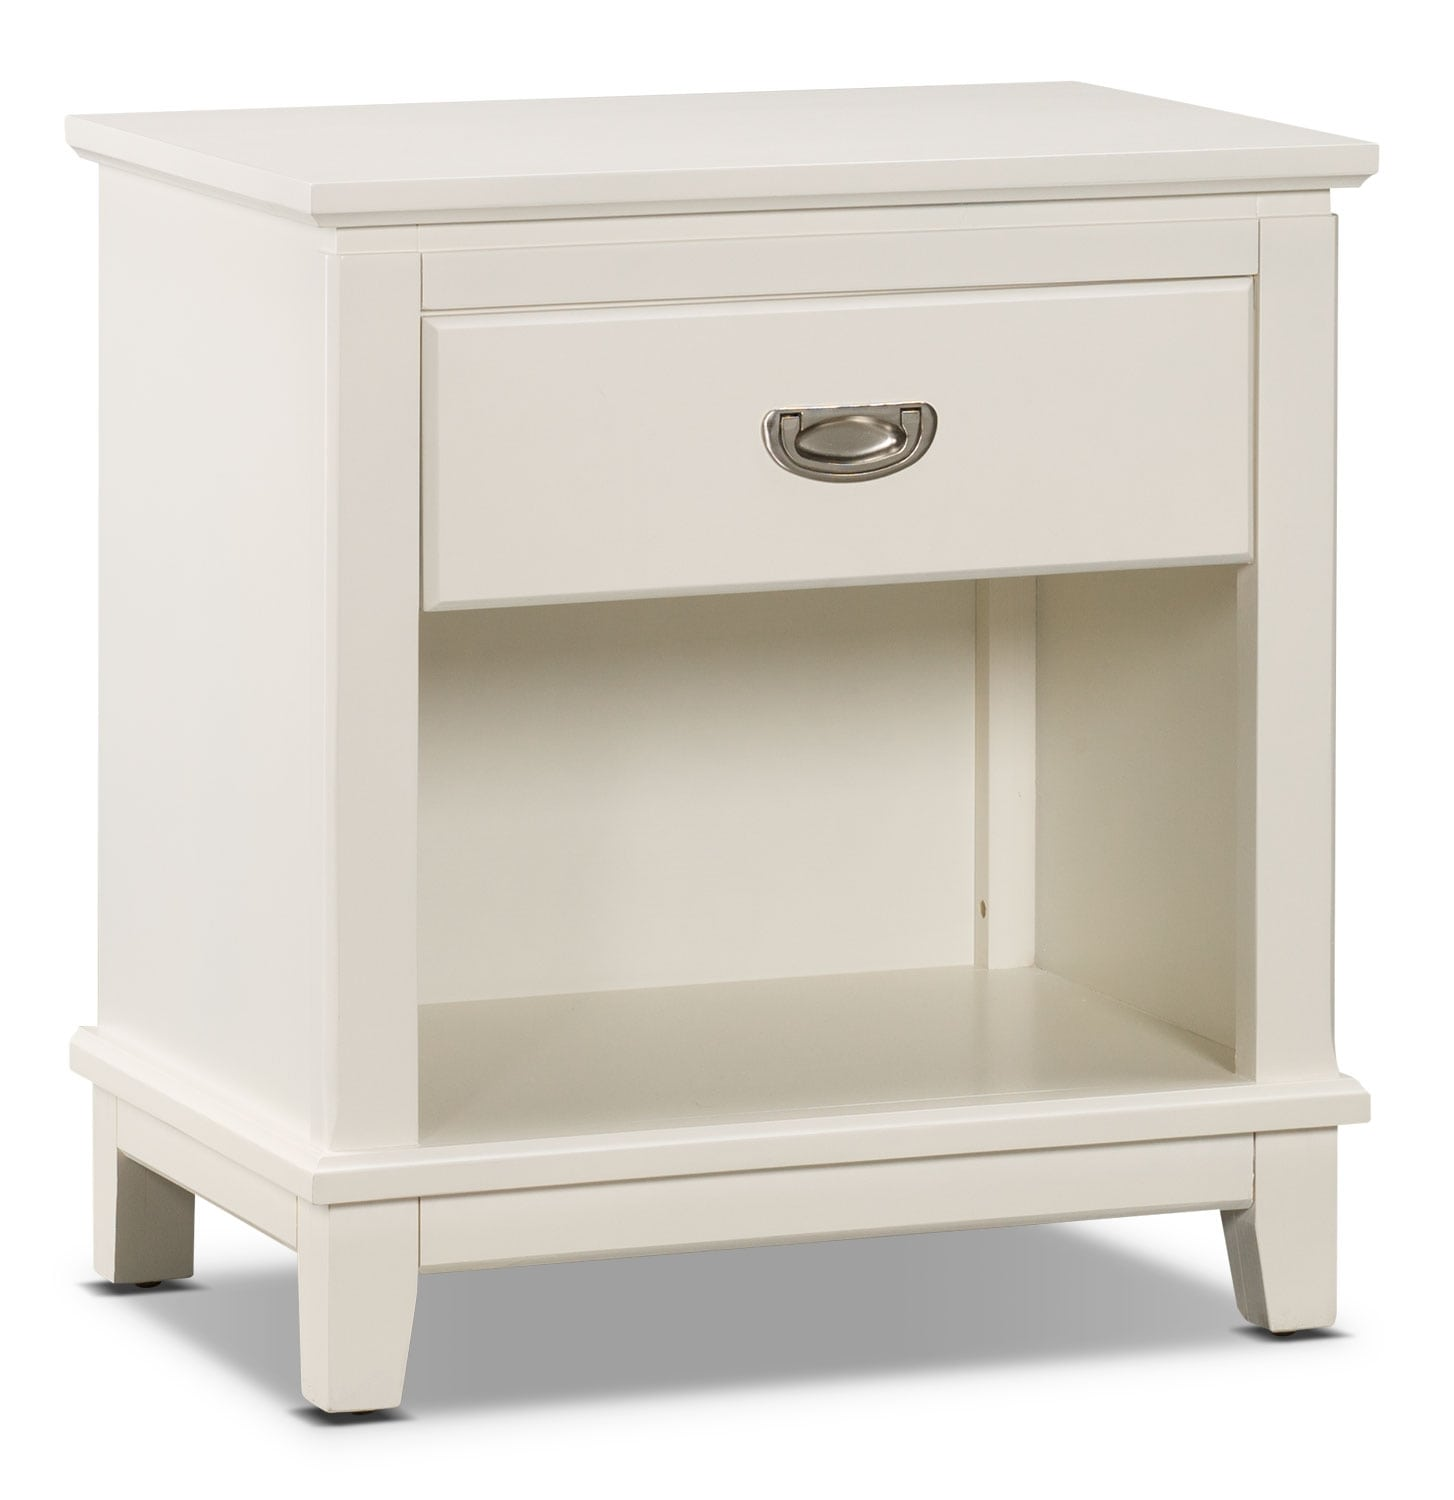 Chadwick Nightstand - White